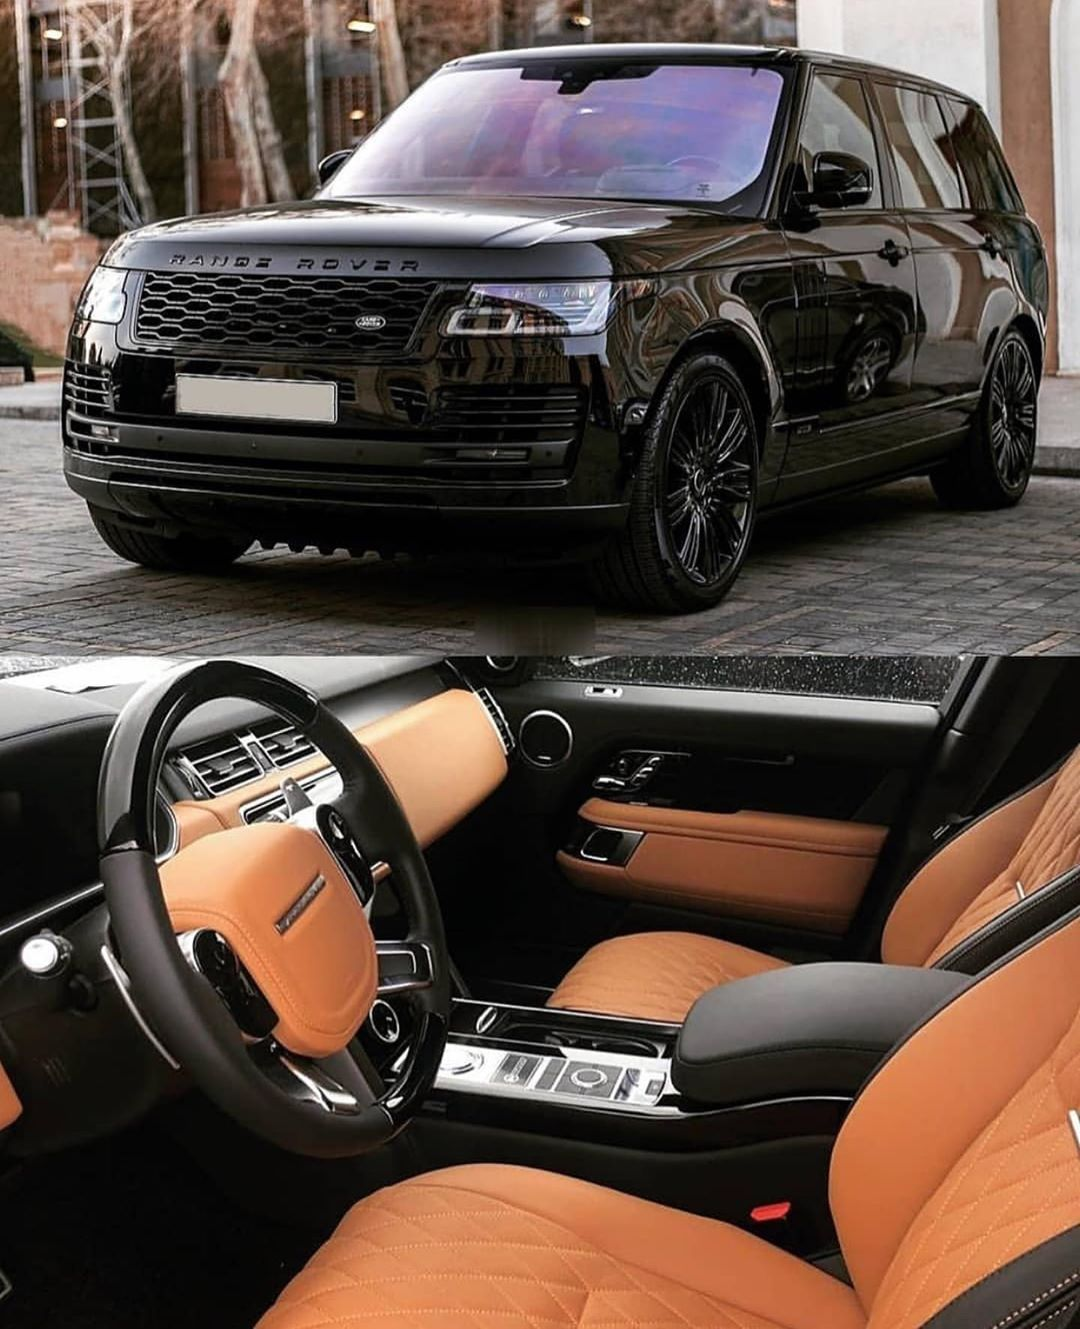 Pin by on Range Rover Évoque & Vogue, the